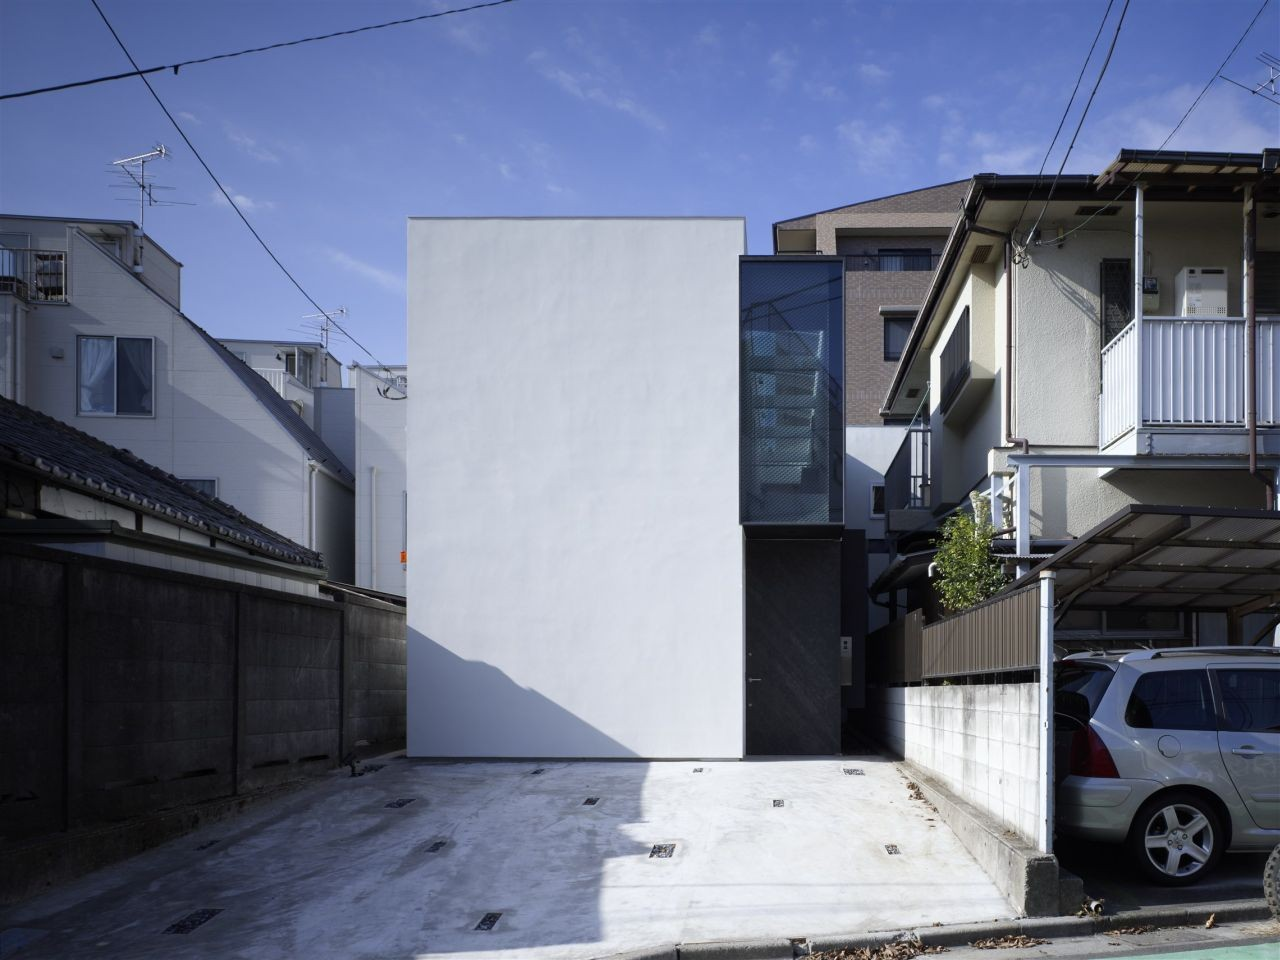 Roji House / airscape architects studio, © Toshiyuki Yano